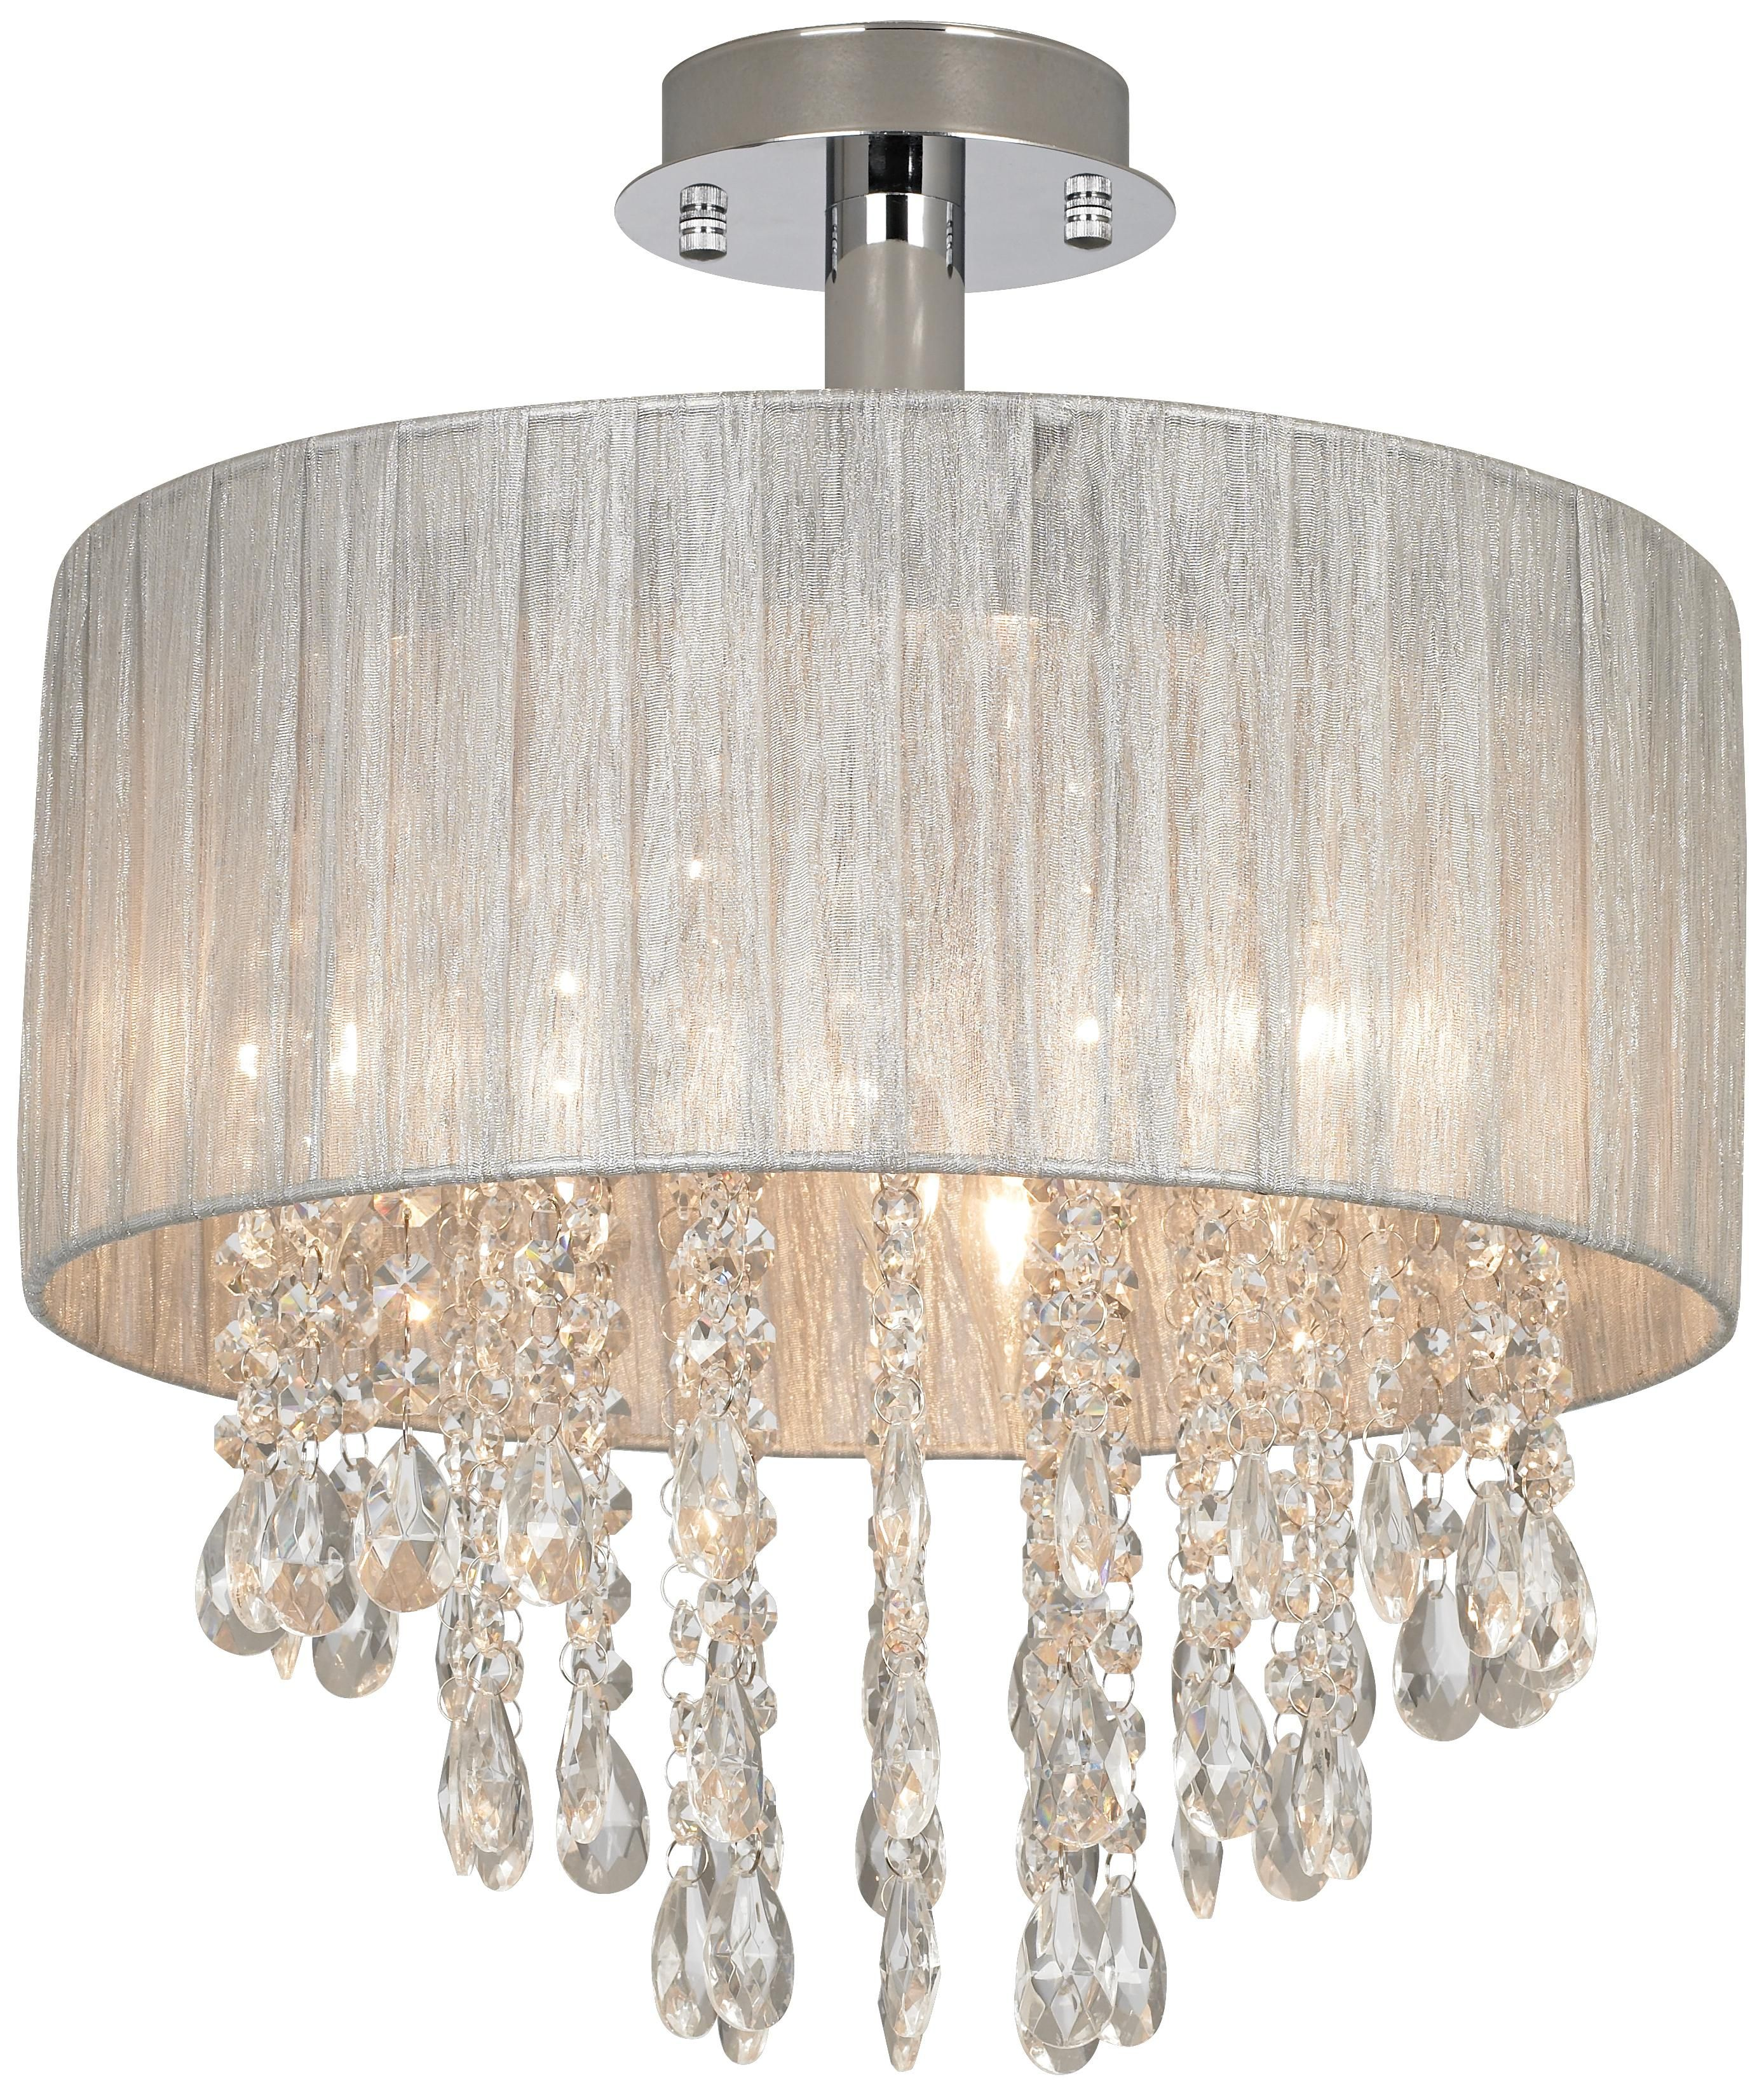 """Possini Euro Jolie 15"""" Wide Silver and Crystal Ceiling"""